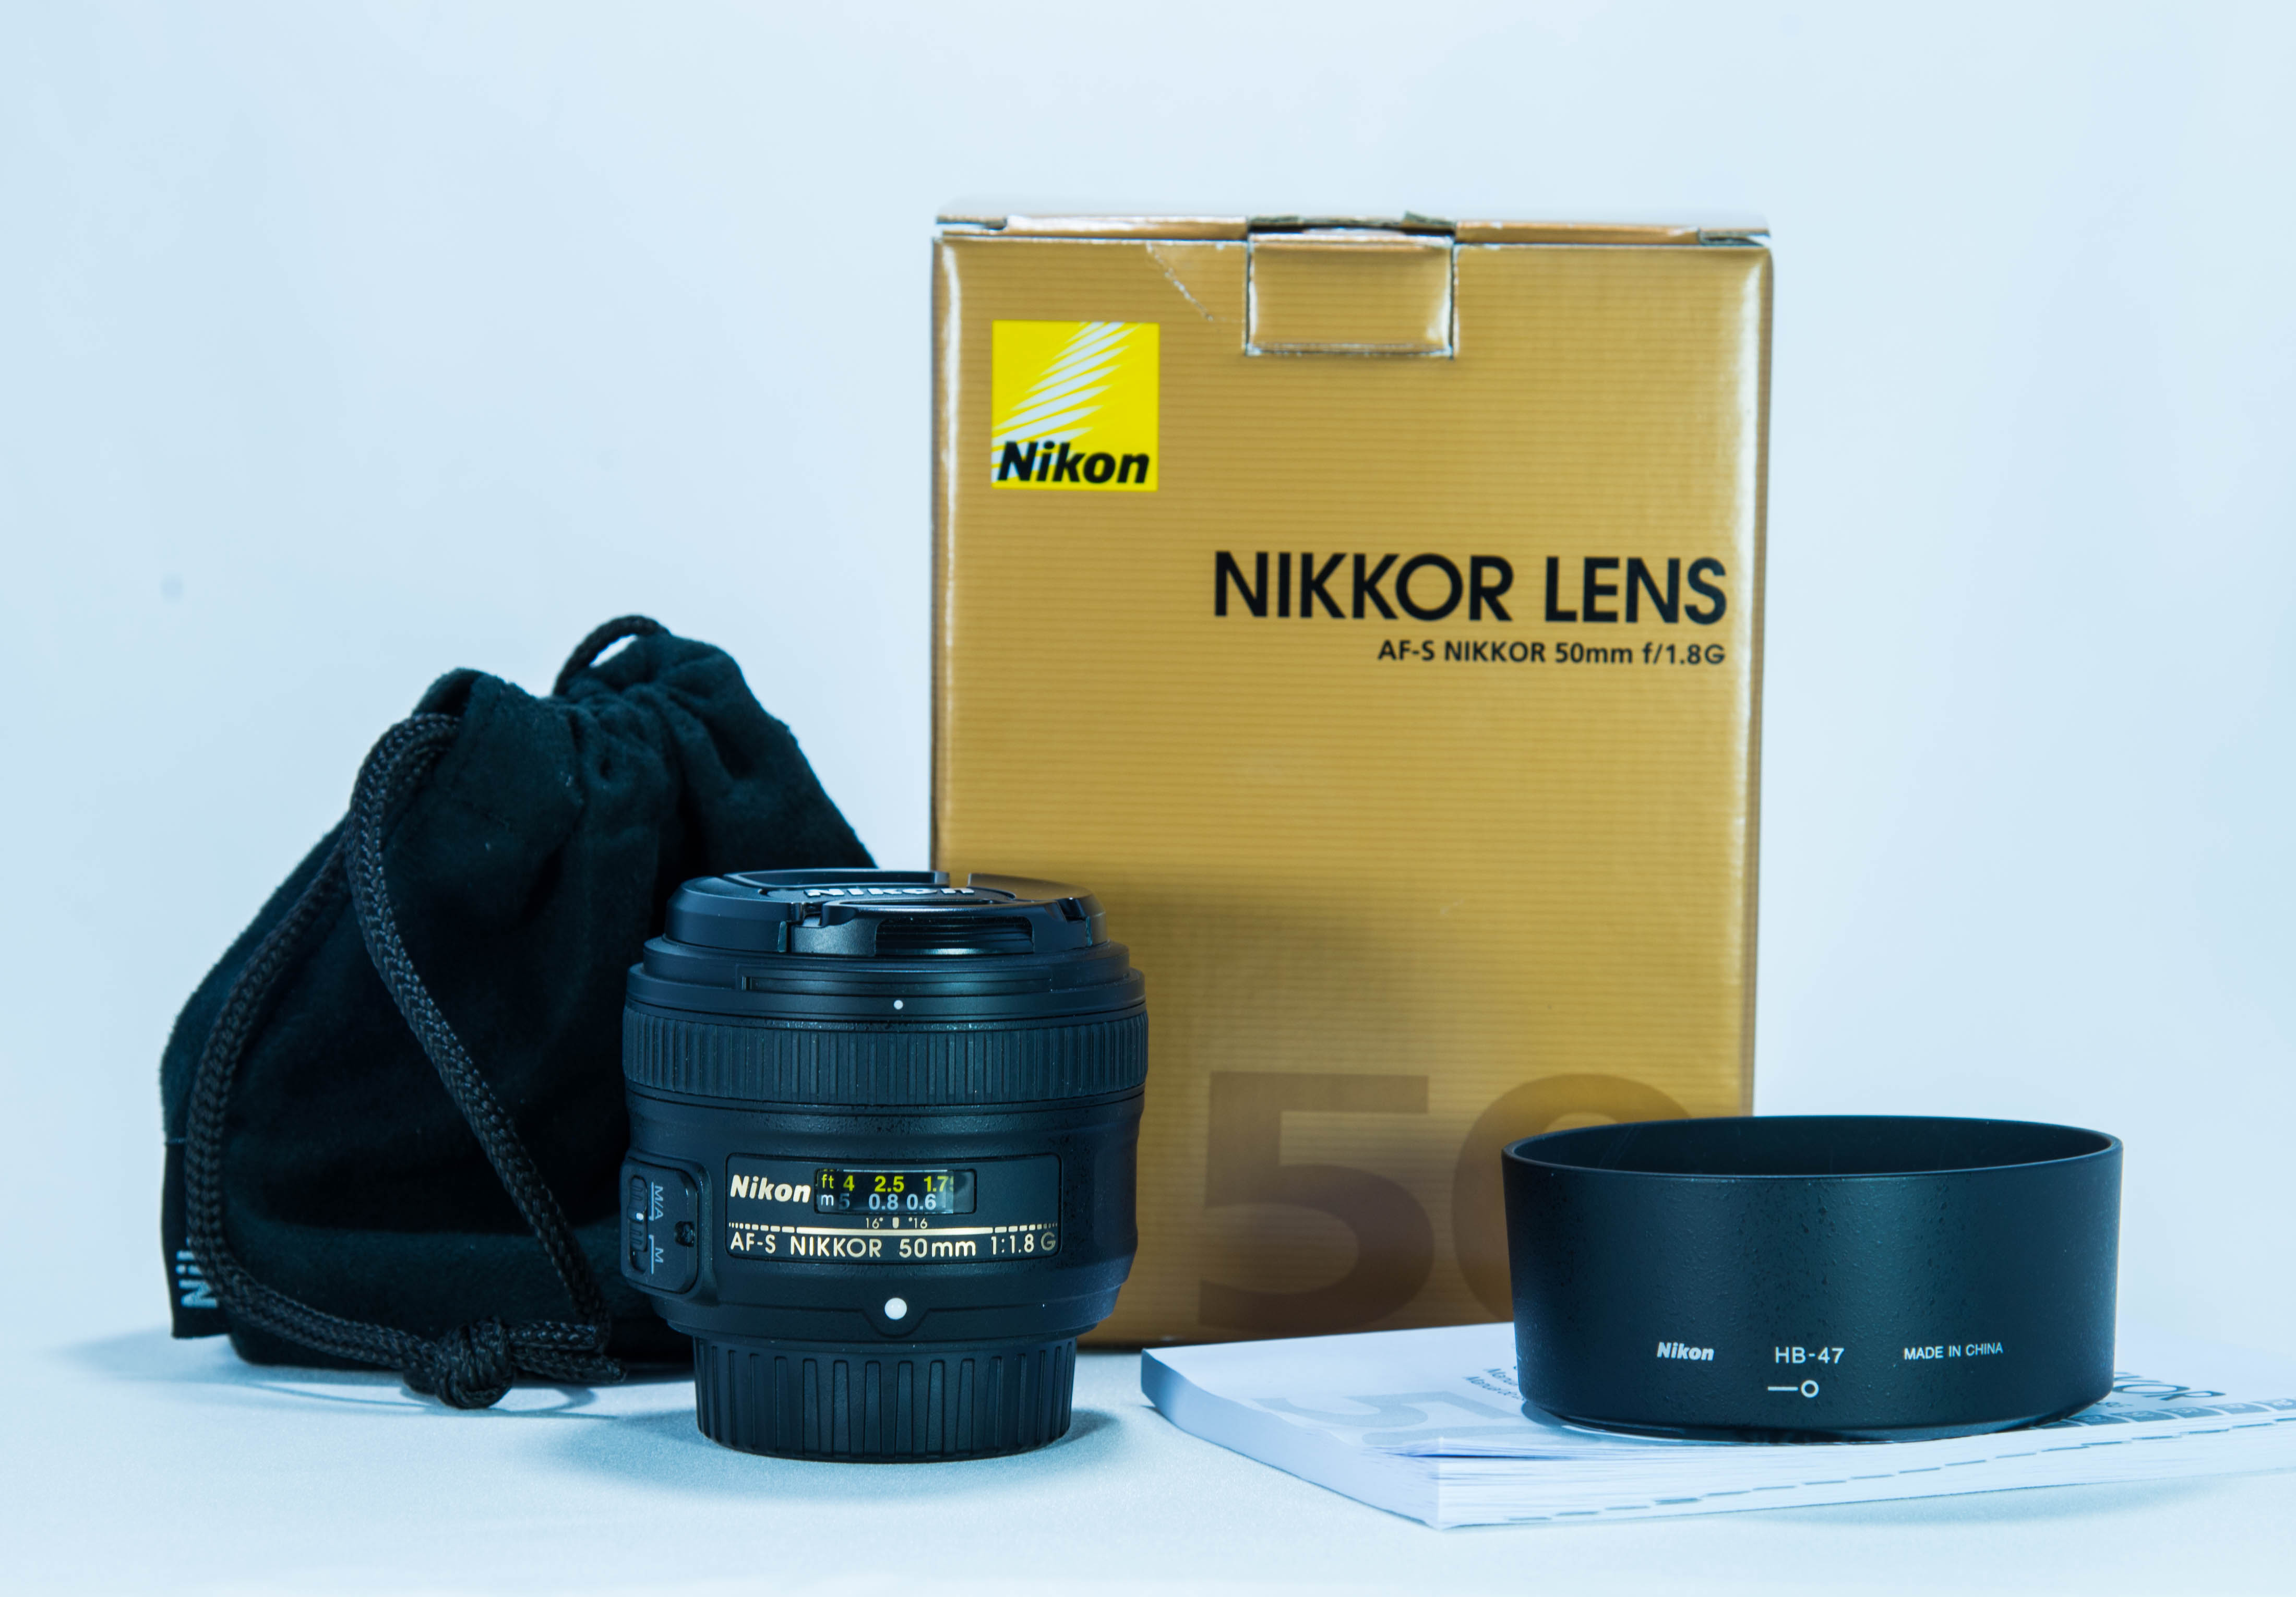 Nikon Af S 50mm 18g Thephotoforum Film Digital Photography Forum Lens With Box